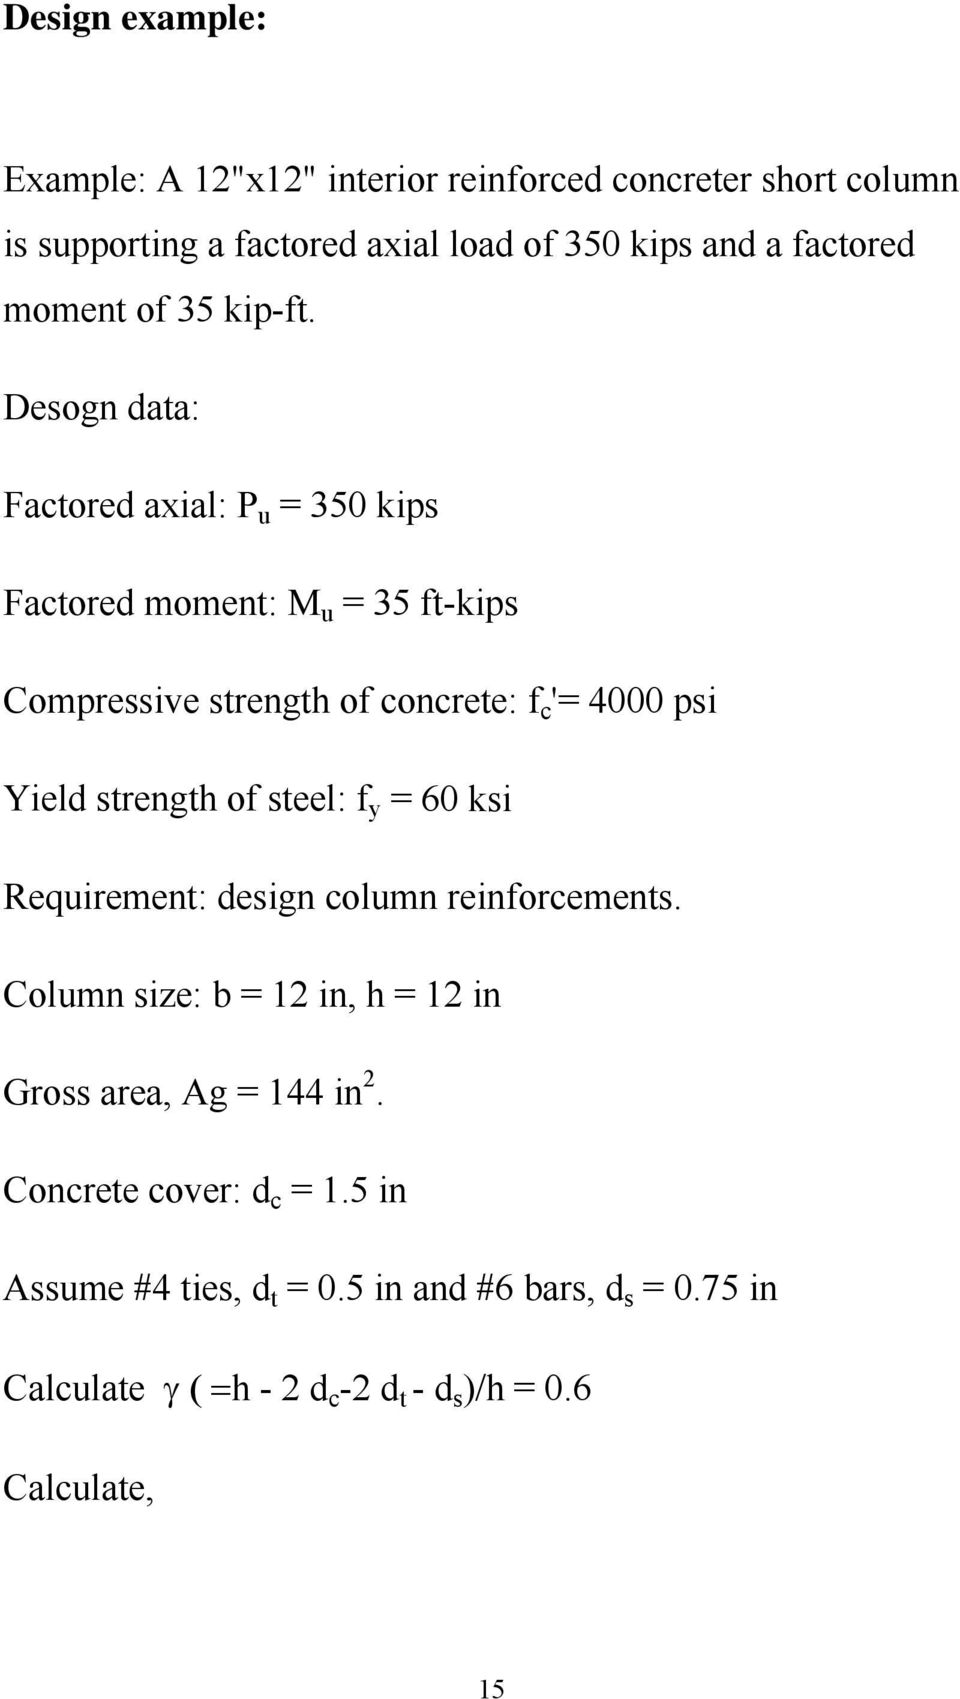 Design of reinforced concrete columns  Type of columns  Failure of